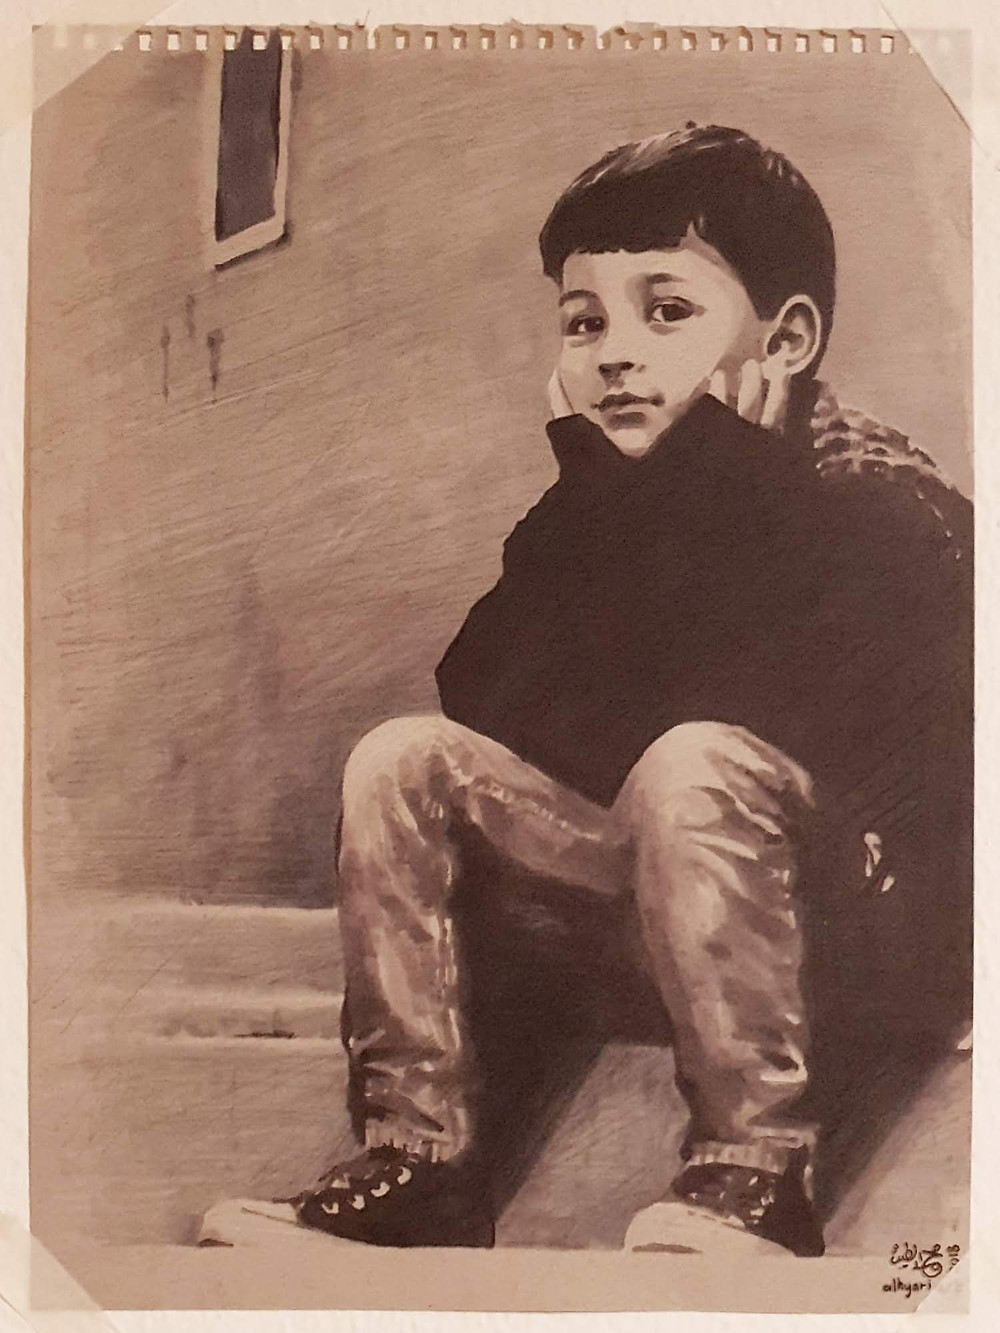 A painting of the artist's son, Tameem al-Hyari, done traditionally using copic markers, pencils and pens on toned paper.